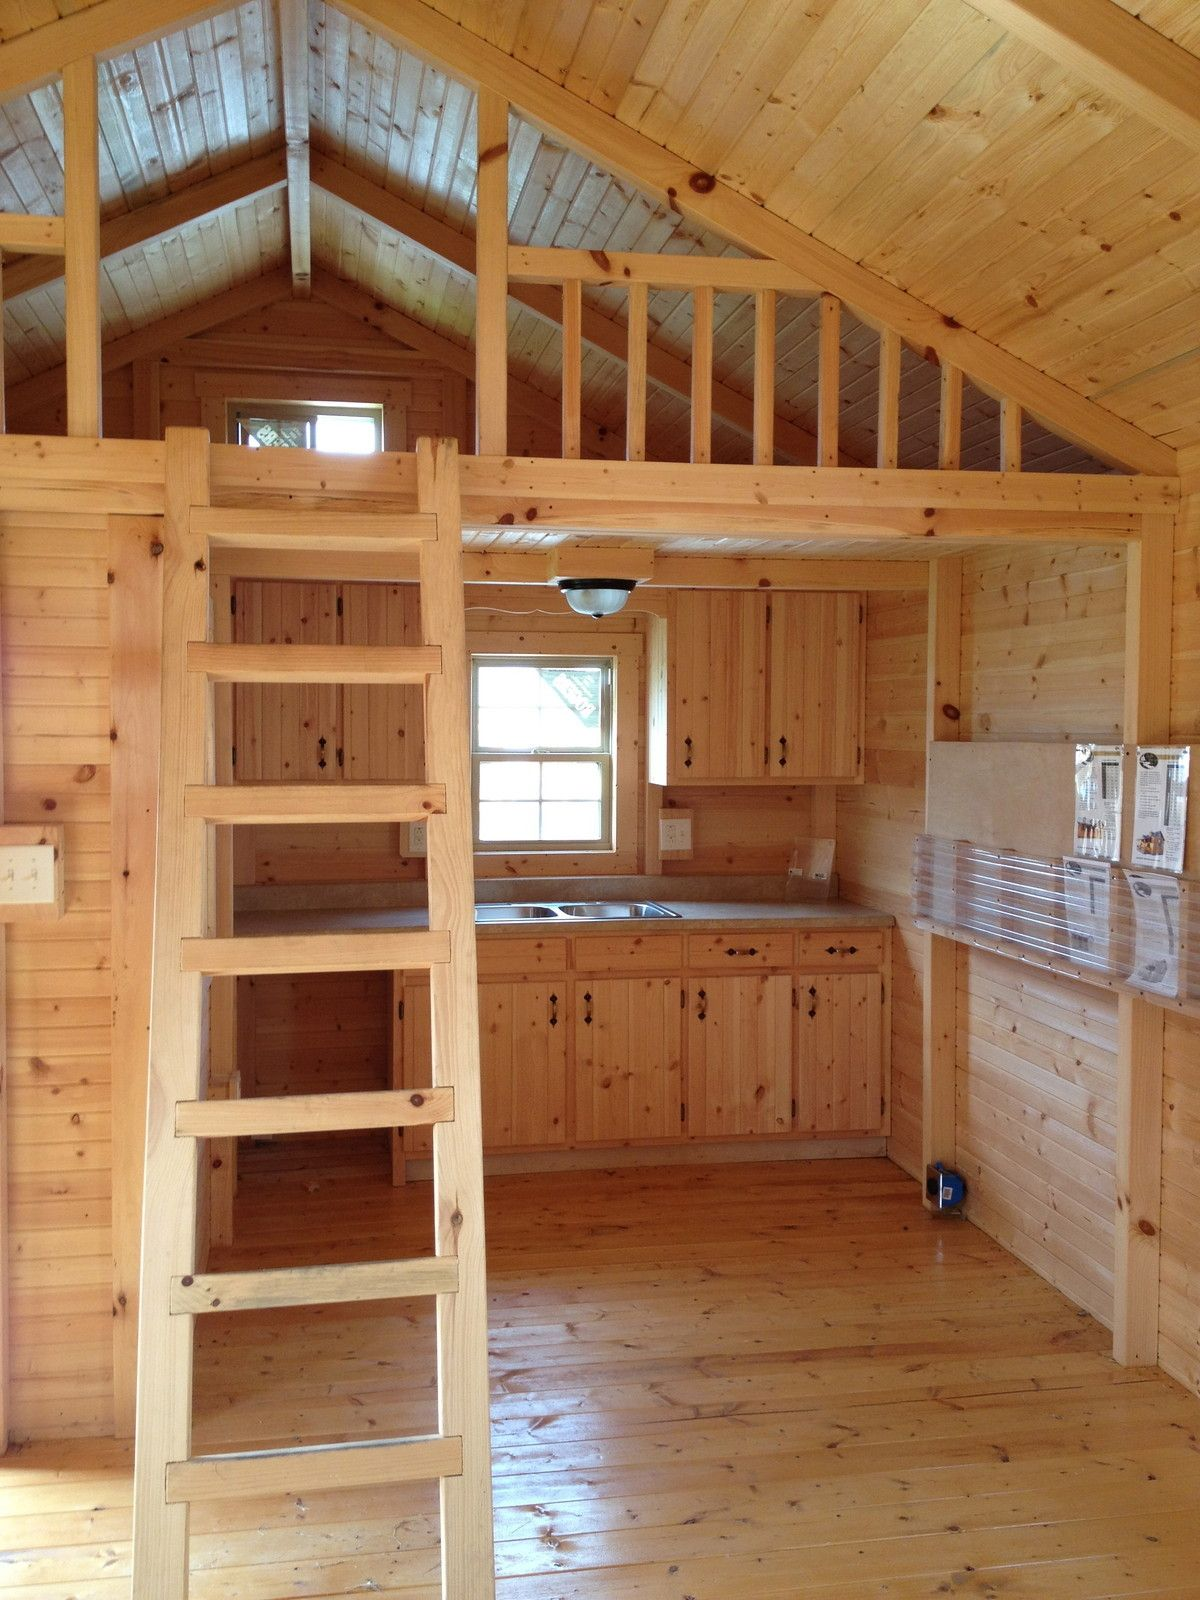 Tiny house ebay 14x24 cabin kit tiny homes pinterest for Building a barn to live in